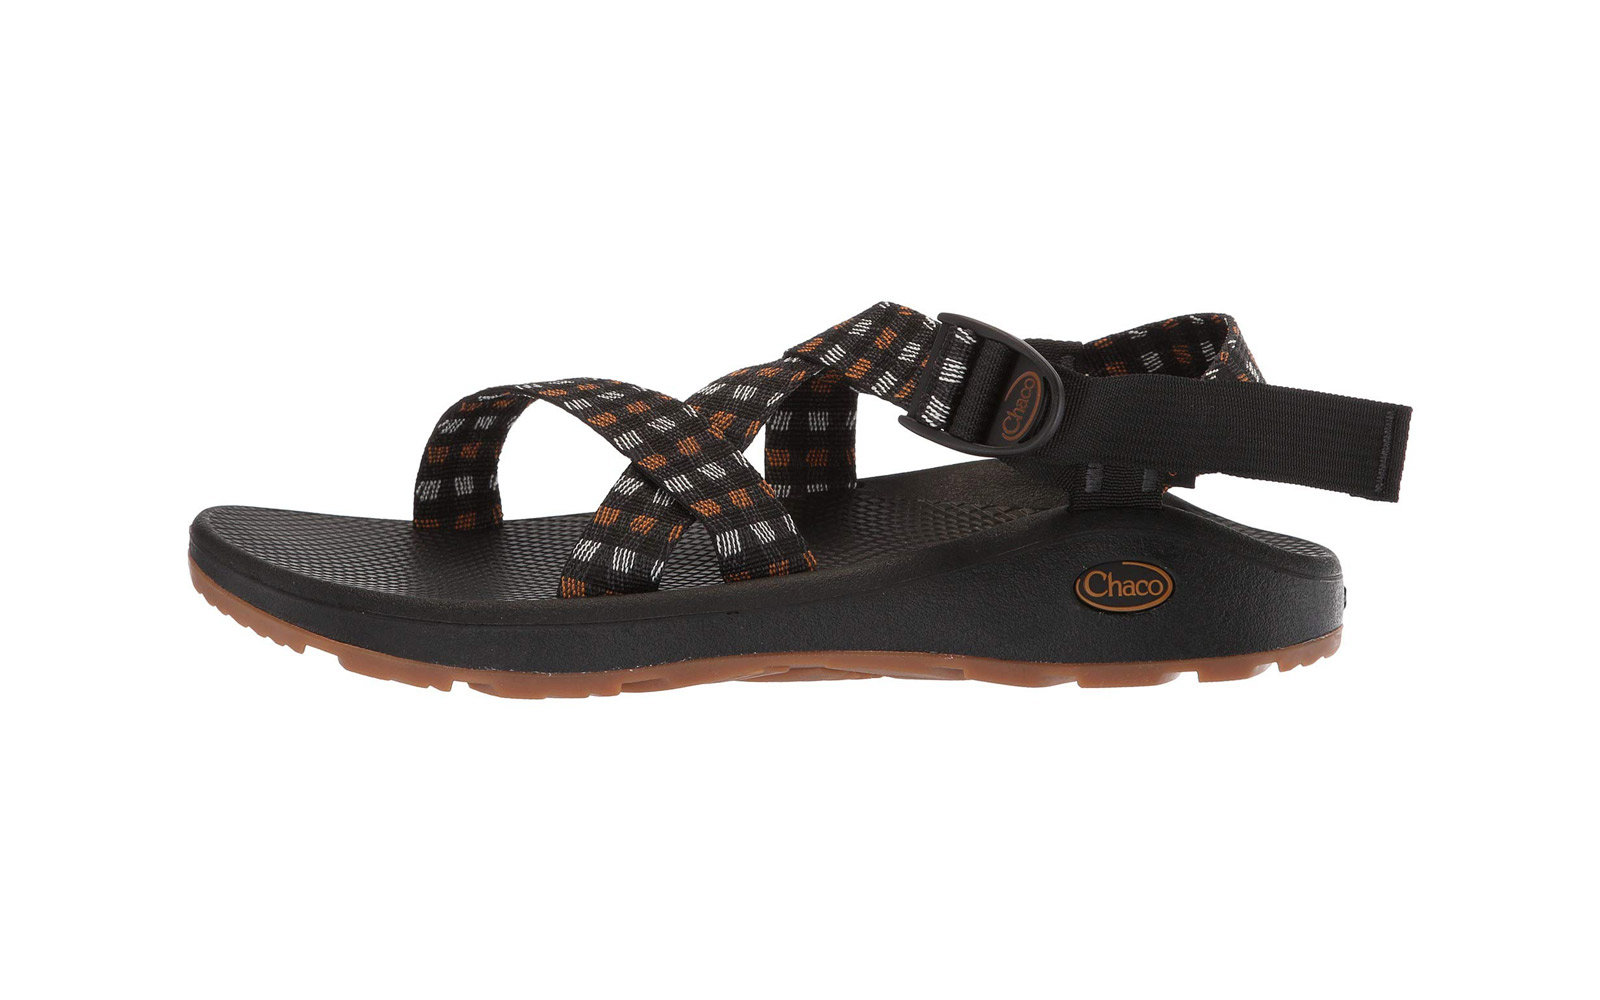 a742e82c9ec7a The Best Men s Sandals to Pack for Your Next Vacation